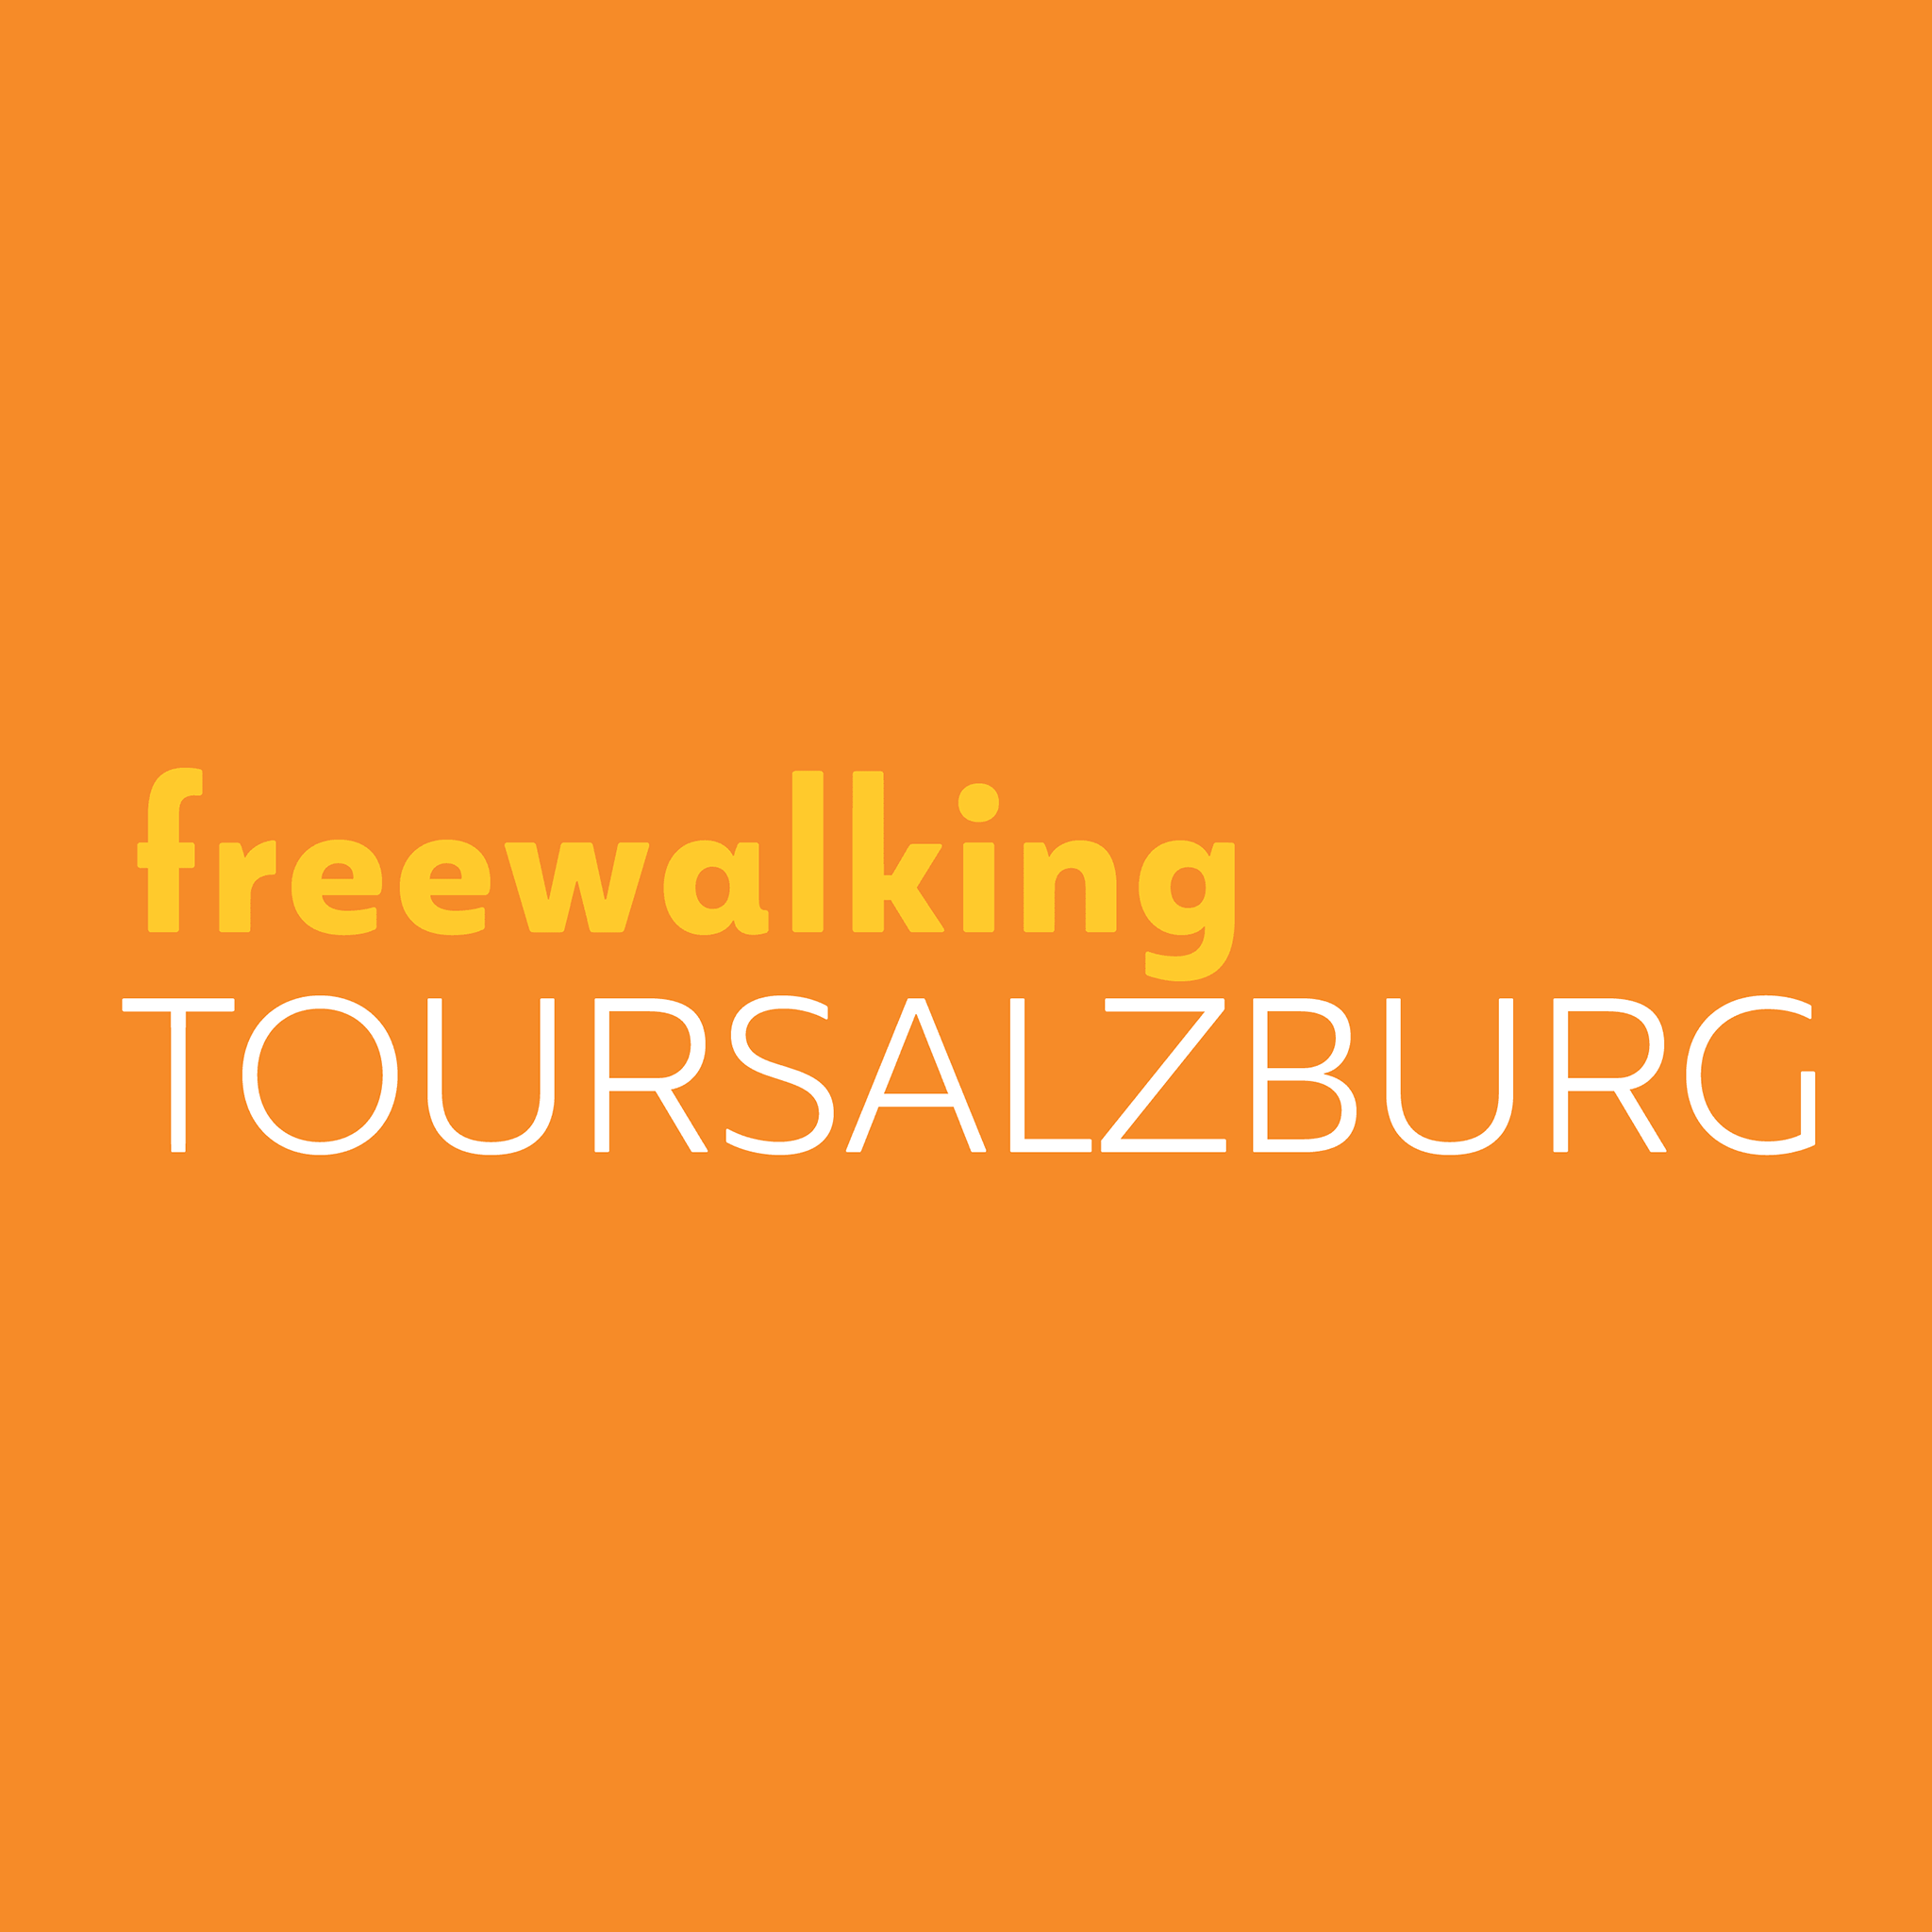 Free-Walking-Tour-Salzburg-Square-Logo